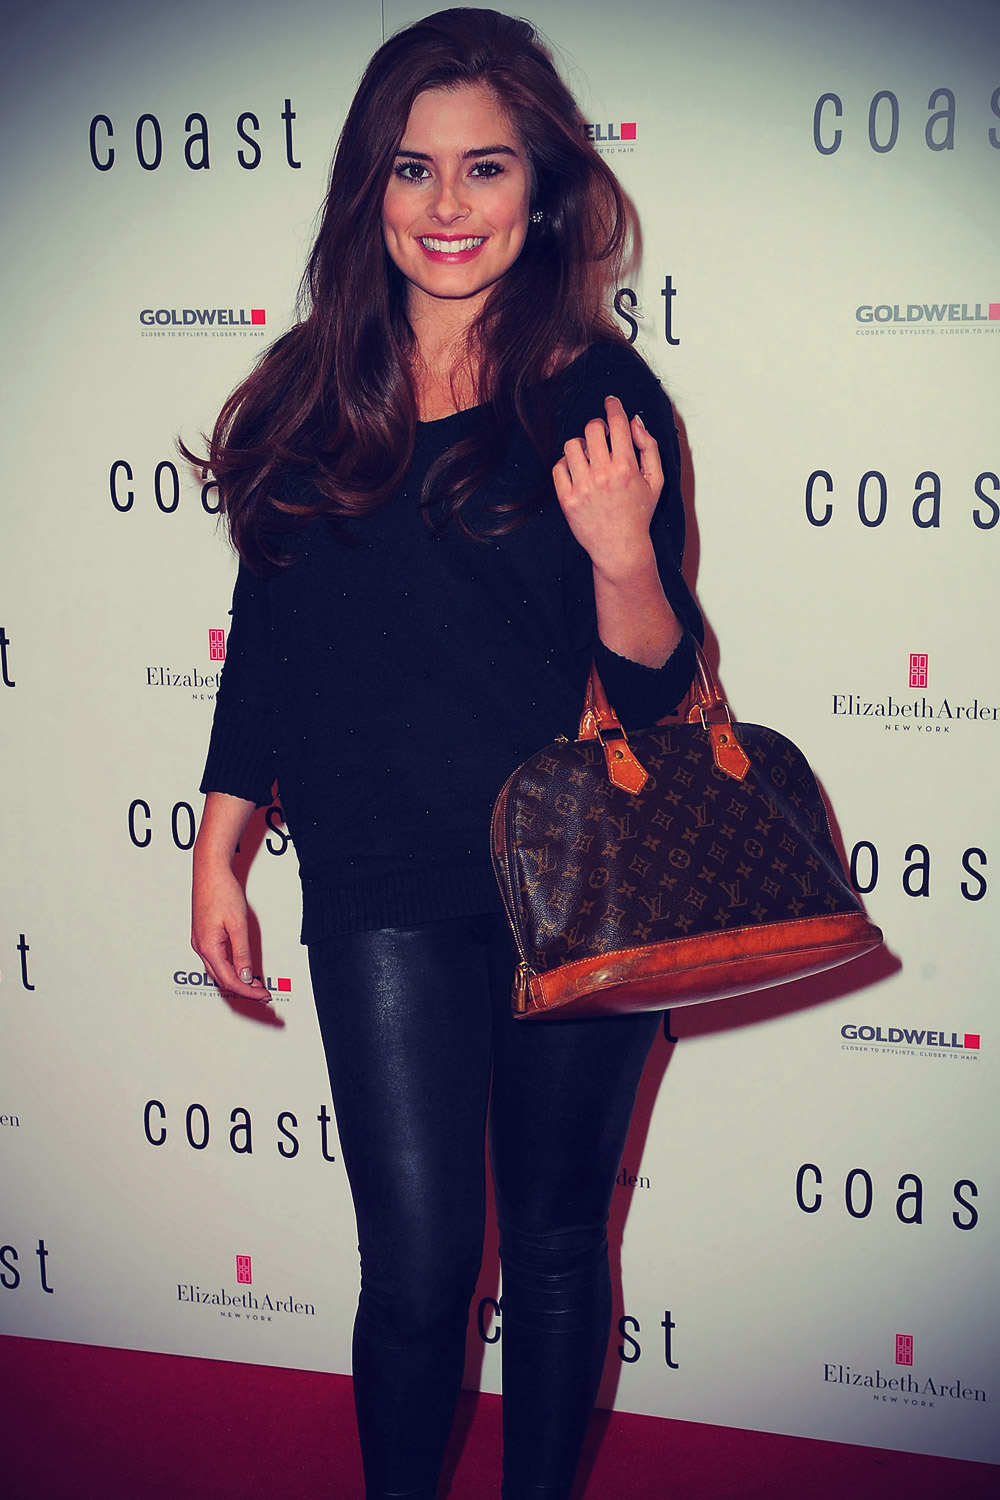 Rachel Shenton Grand opening of Coast's flagship store